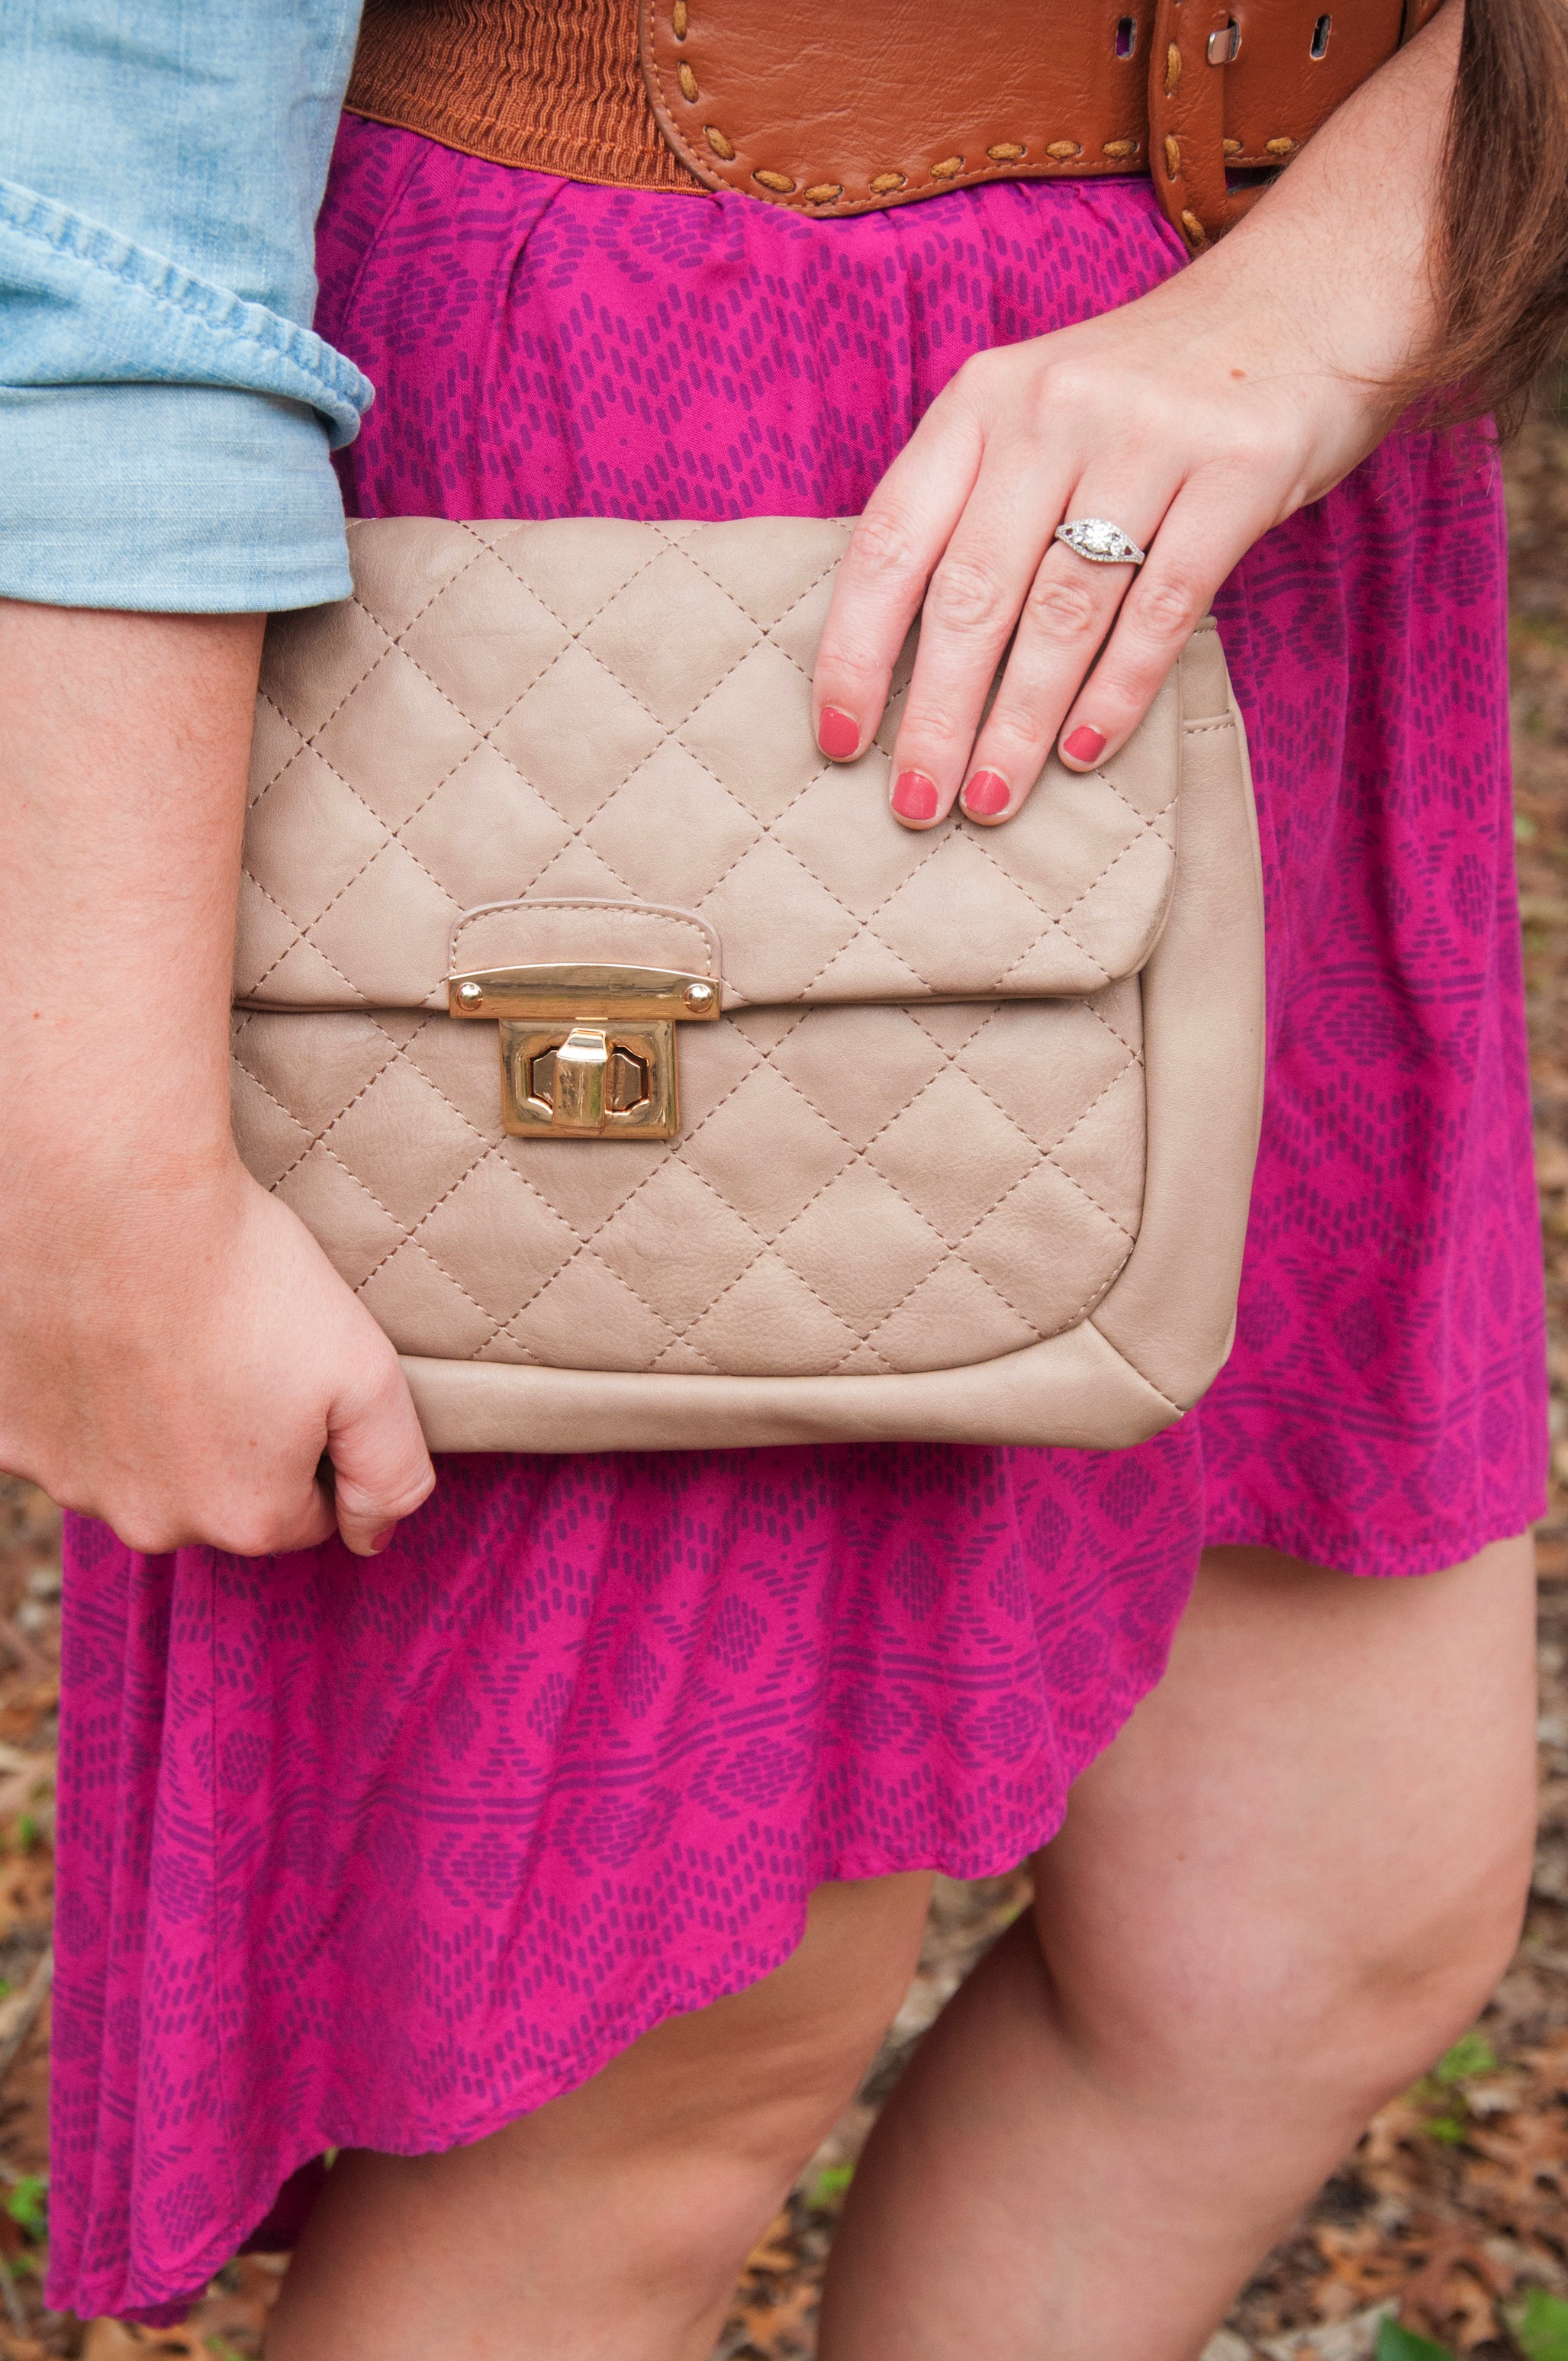 Hi Low skirt with a cute tan clutch